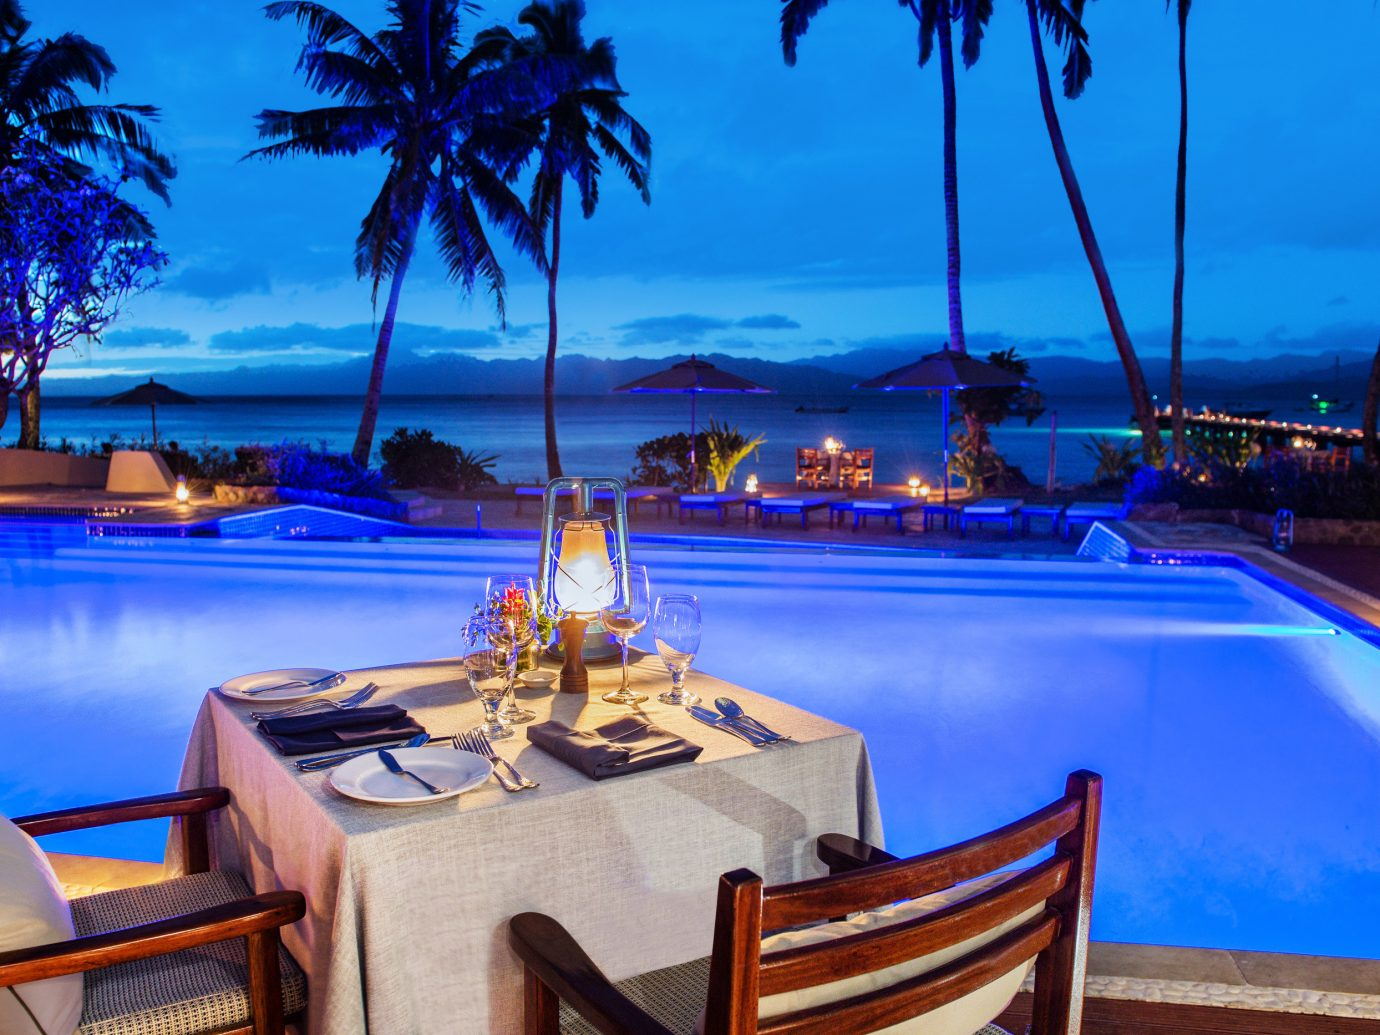 All-Inclusive Resorts Boutique Hotels Hotels Romance tree sky outdoor Resort chair swimming pool leisure palm tree resort town vacation tropics arecales water lighting caribbean evening Sea tourism estate hotel Villa restaurant amenity set furniture